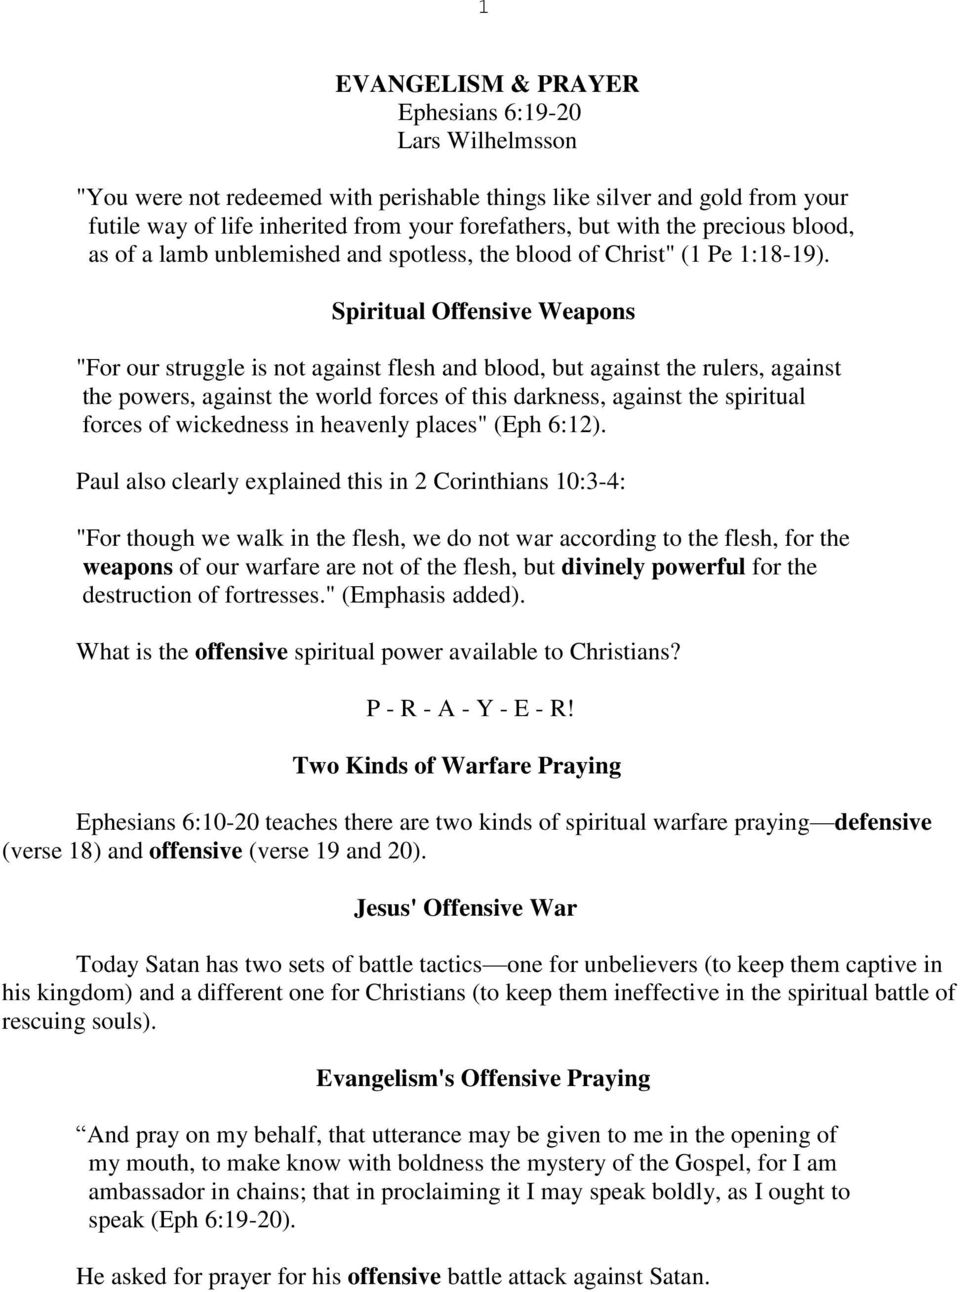 Warfare Prayer 1